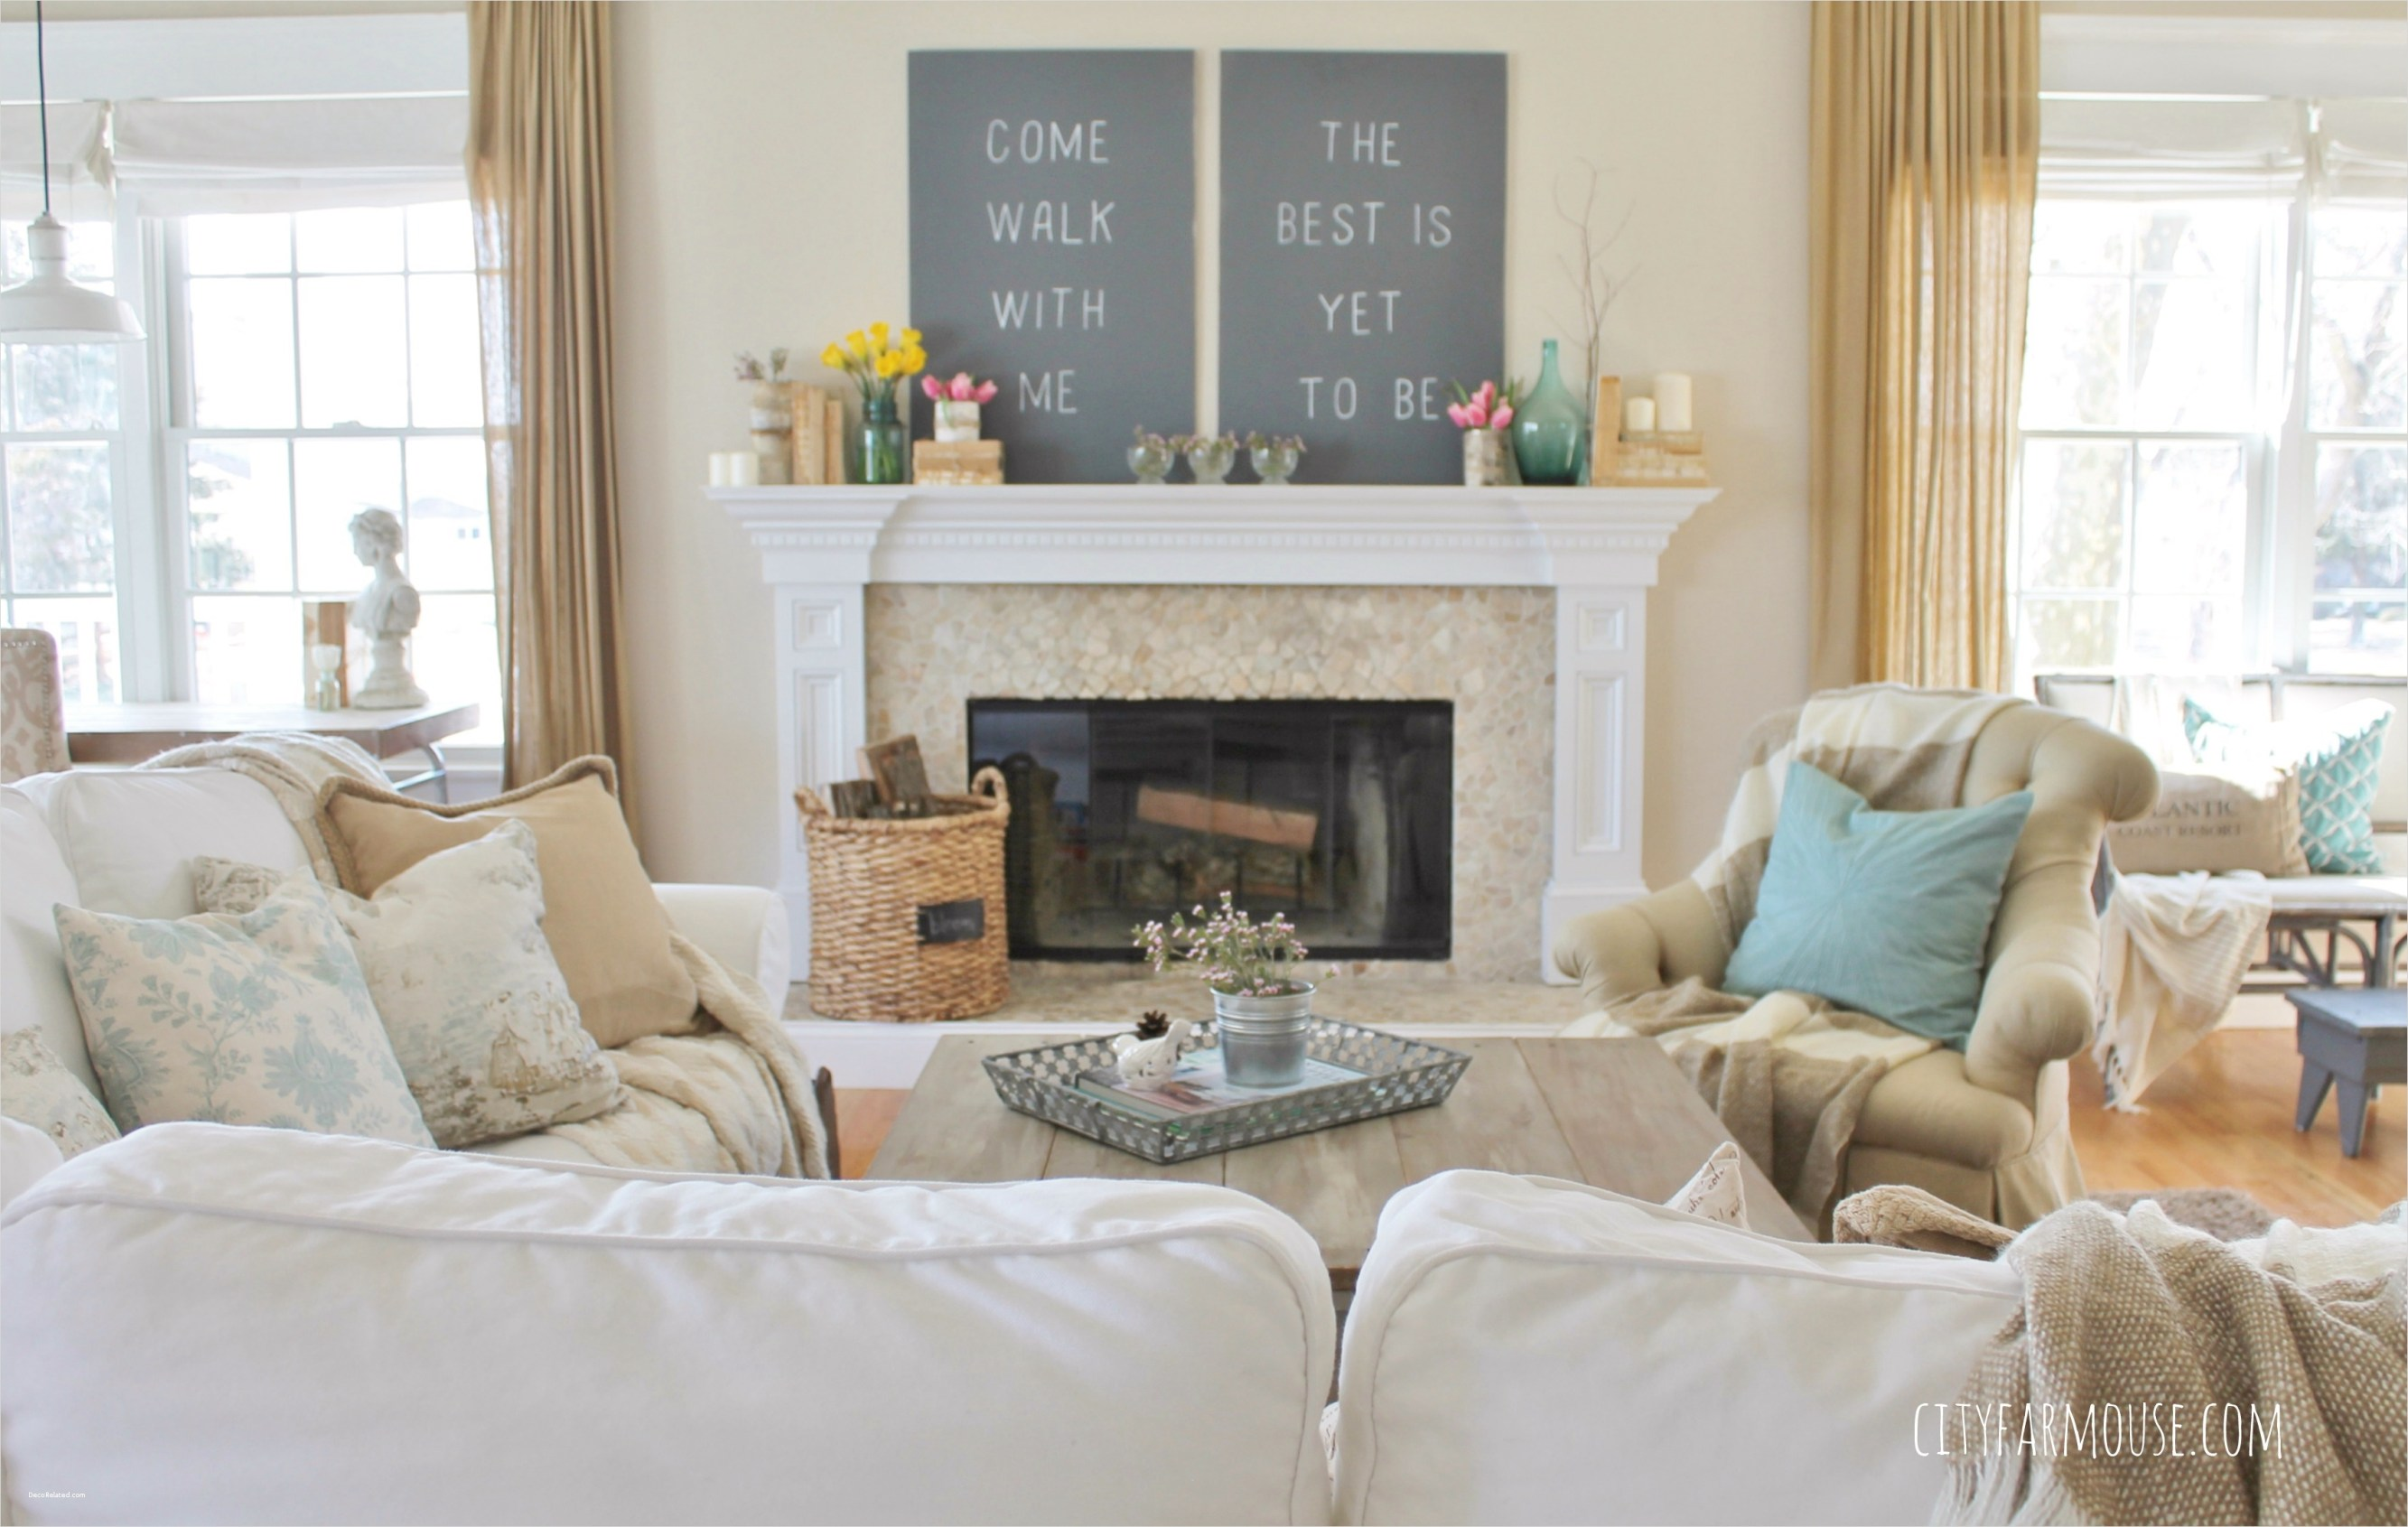 Spring Floral Bedroom Decor 19 Seasons Home Easy Decorating Ideas for Spring City Farmhouse 7